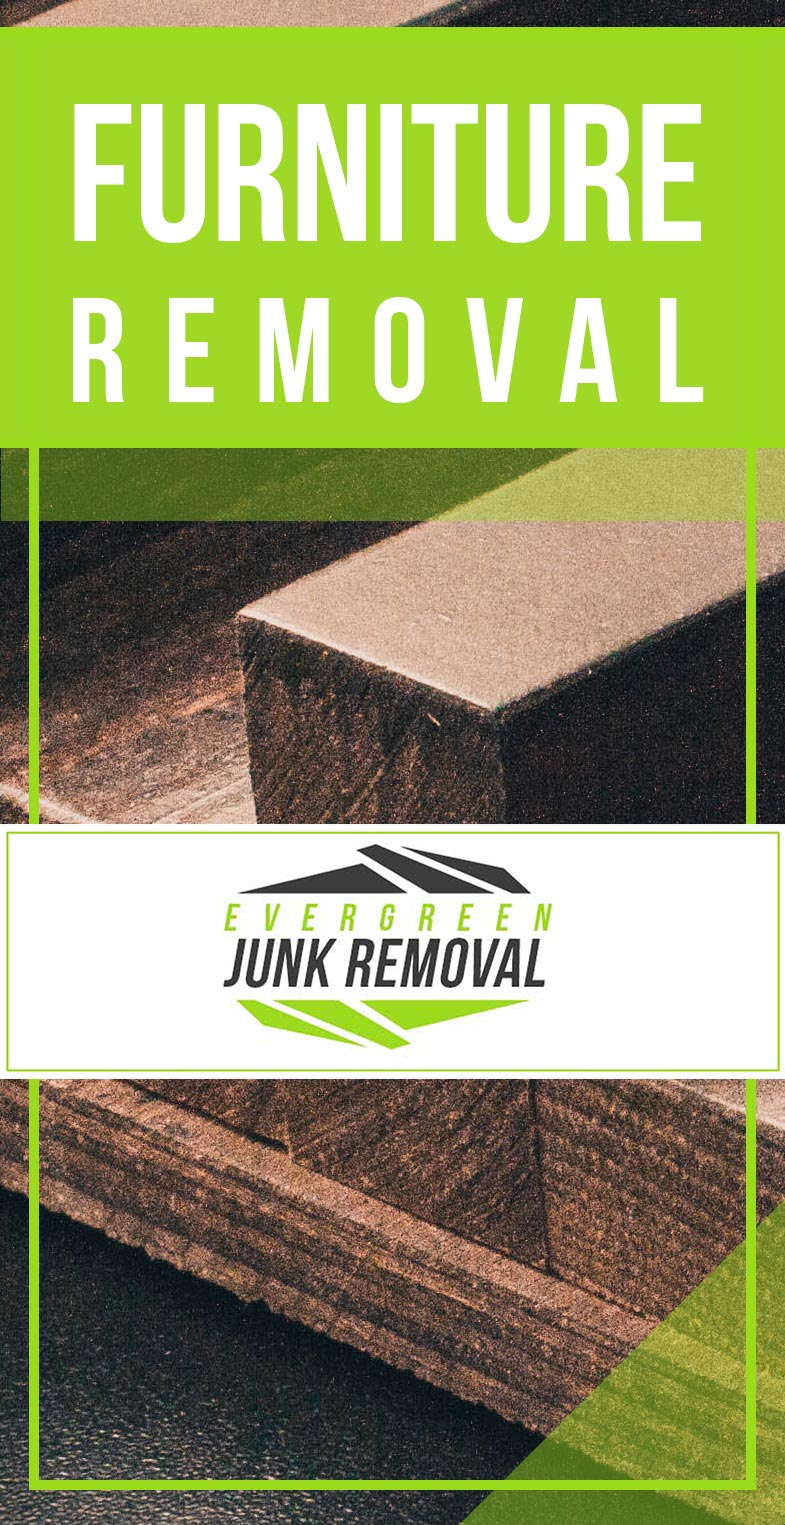 Bellaire Furniture Removal